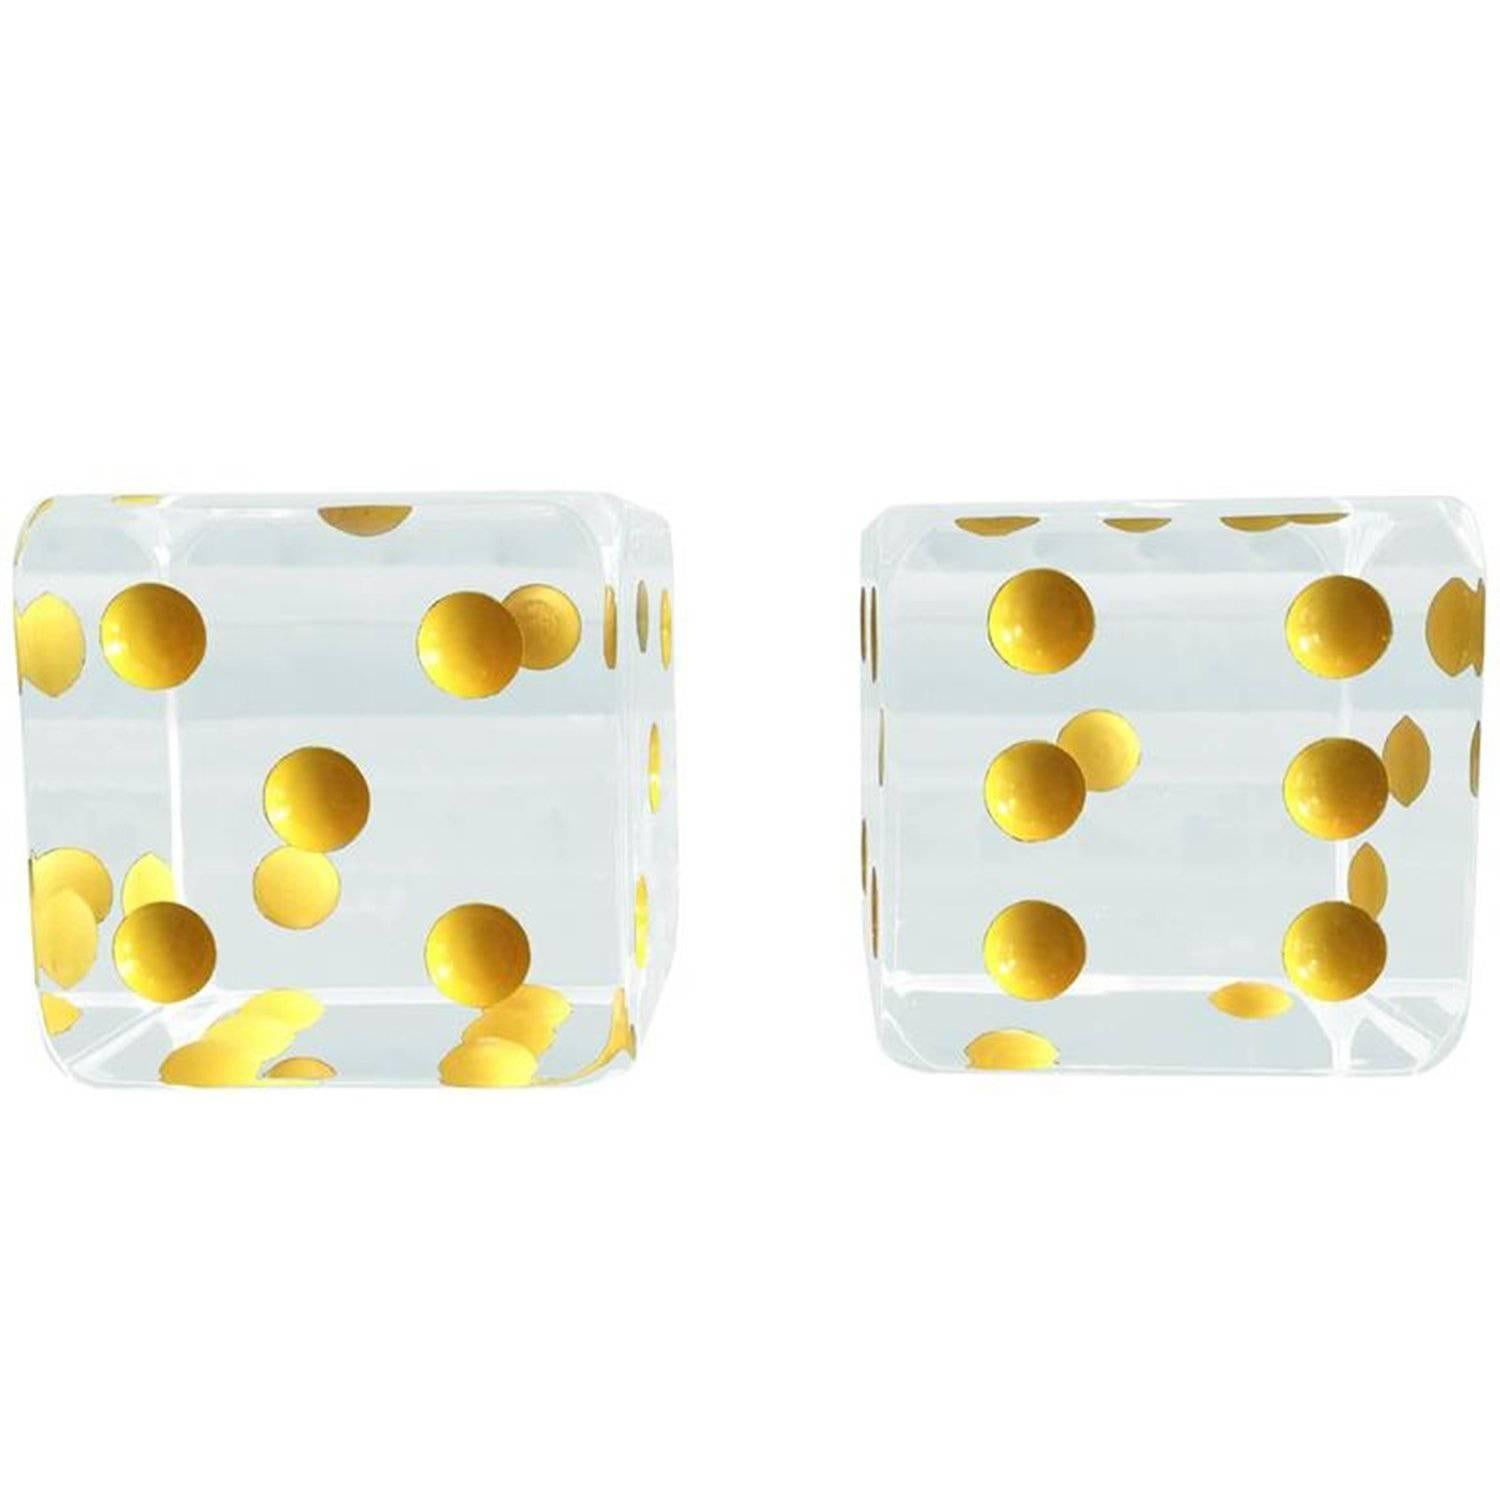 Oversized Dice Bookends in Lucite by Charles Hollis Jones